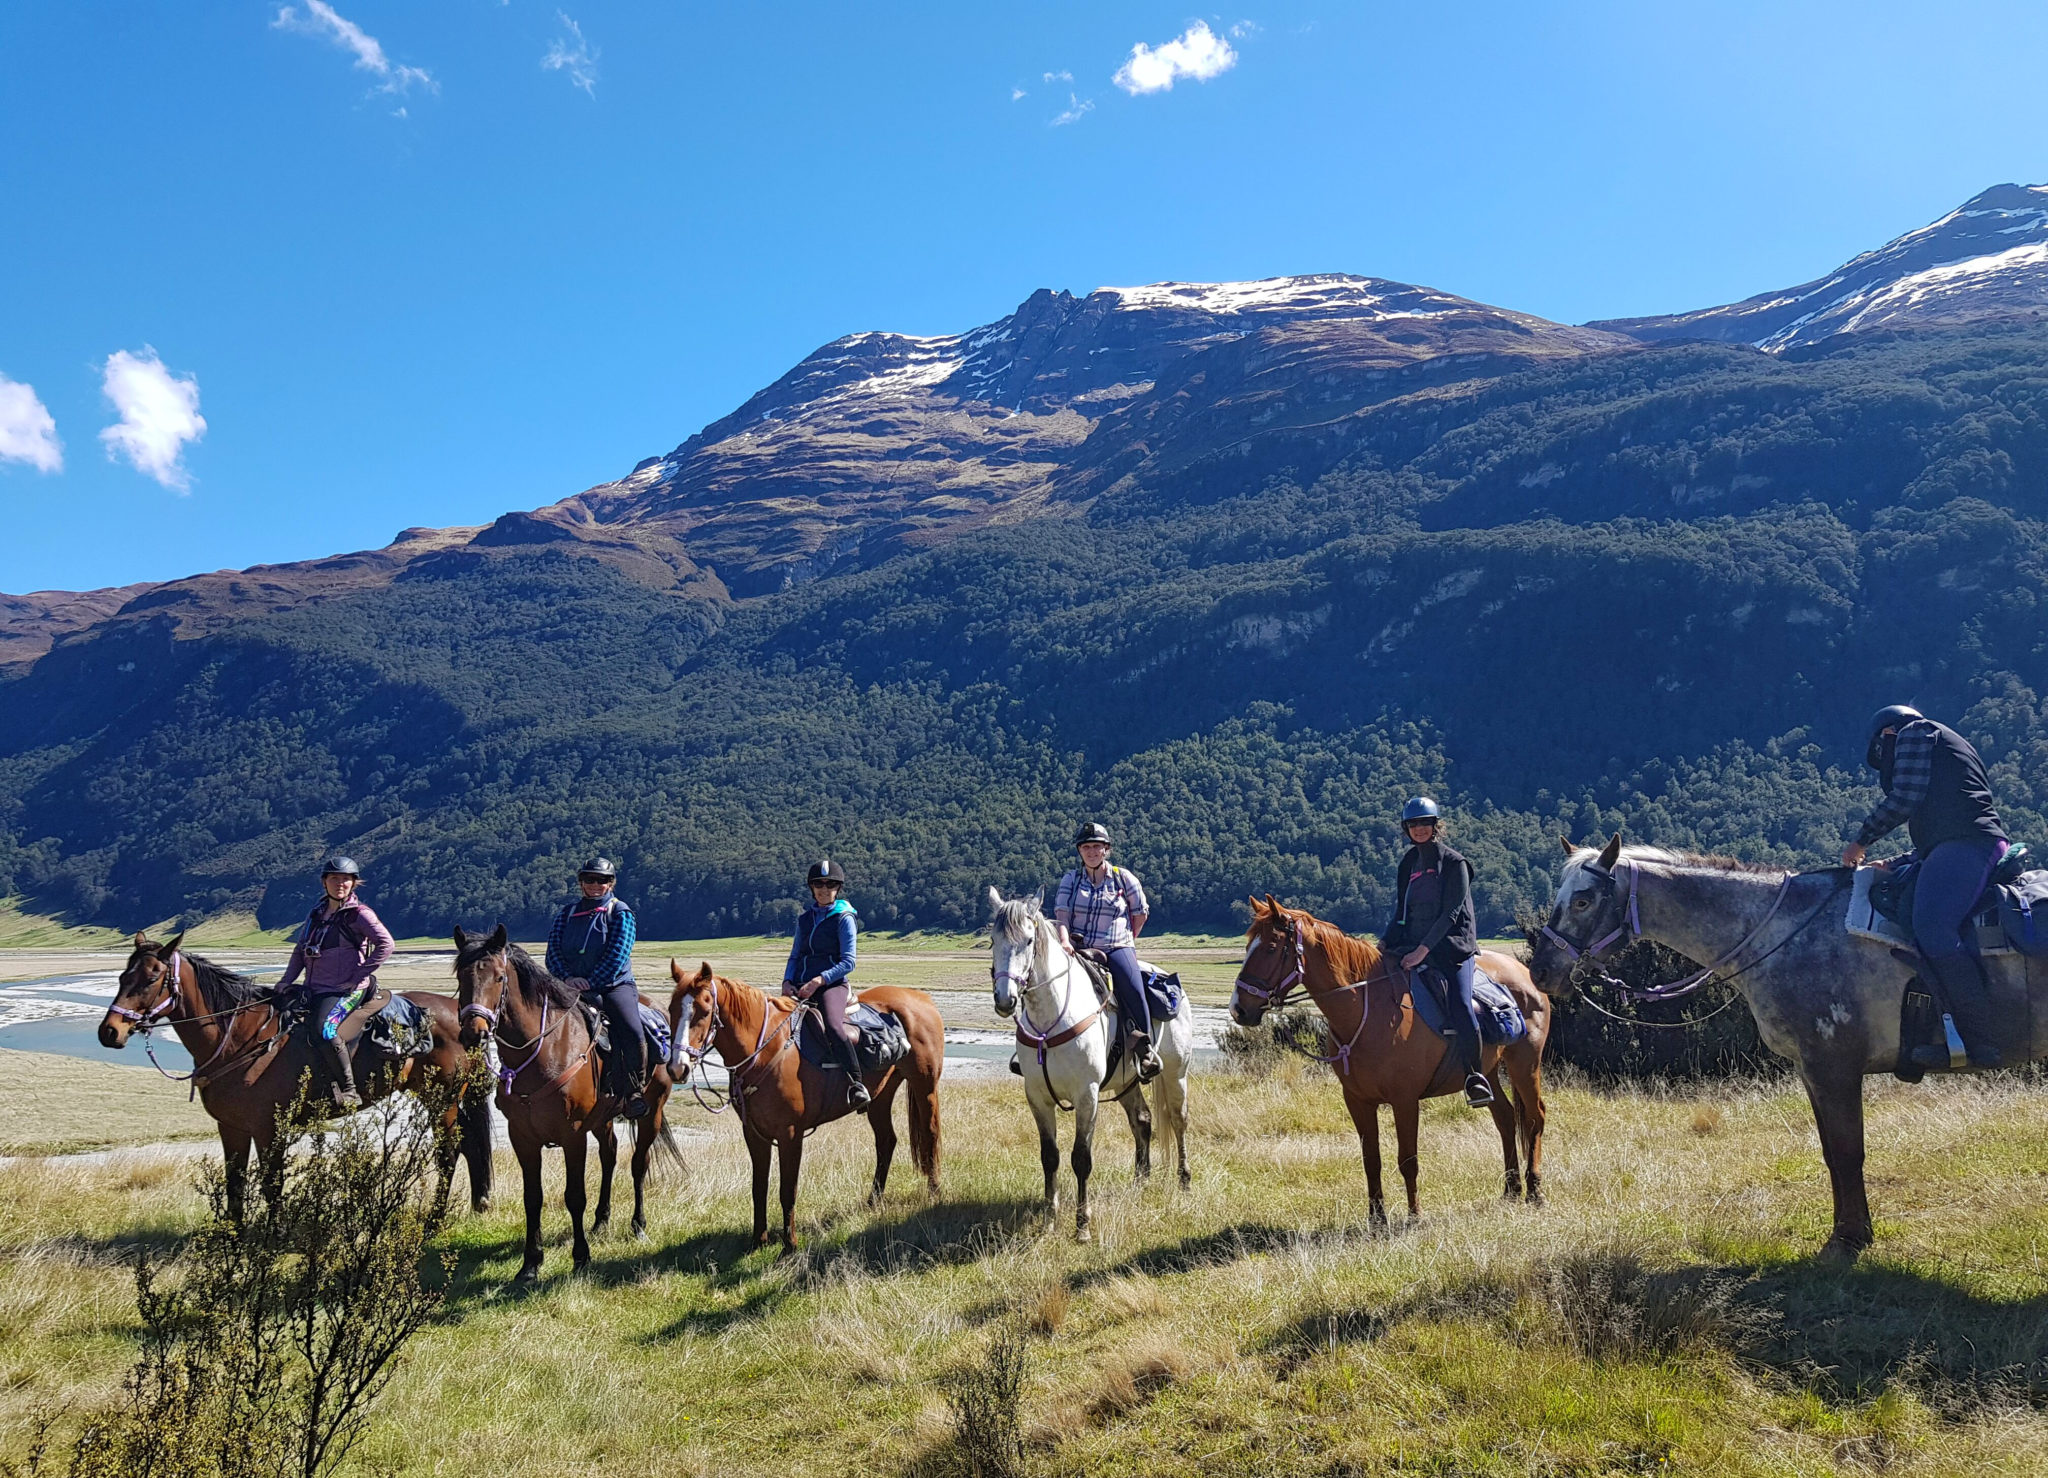 Glenorchy Back Country Ride, New Zealand - Globetrotting horse riding holidays